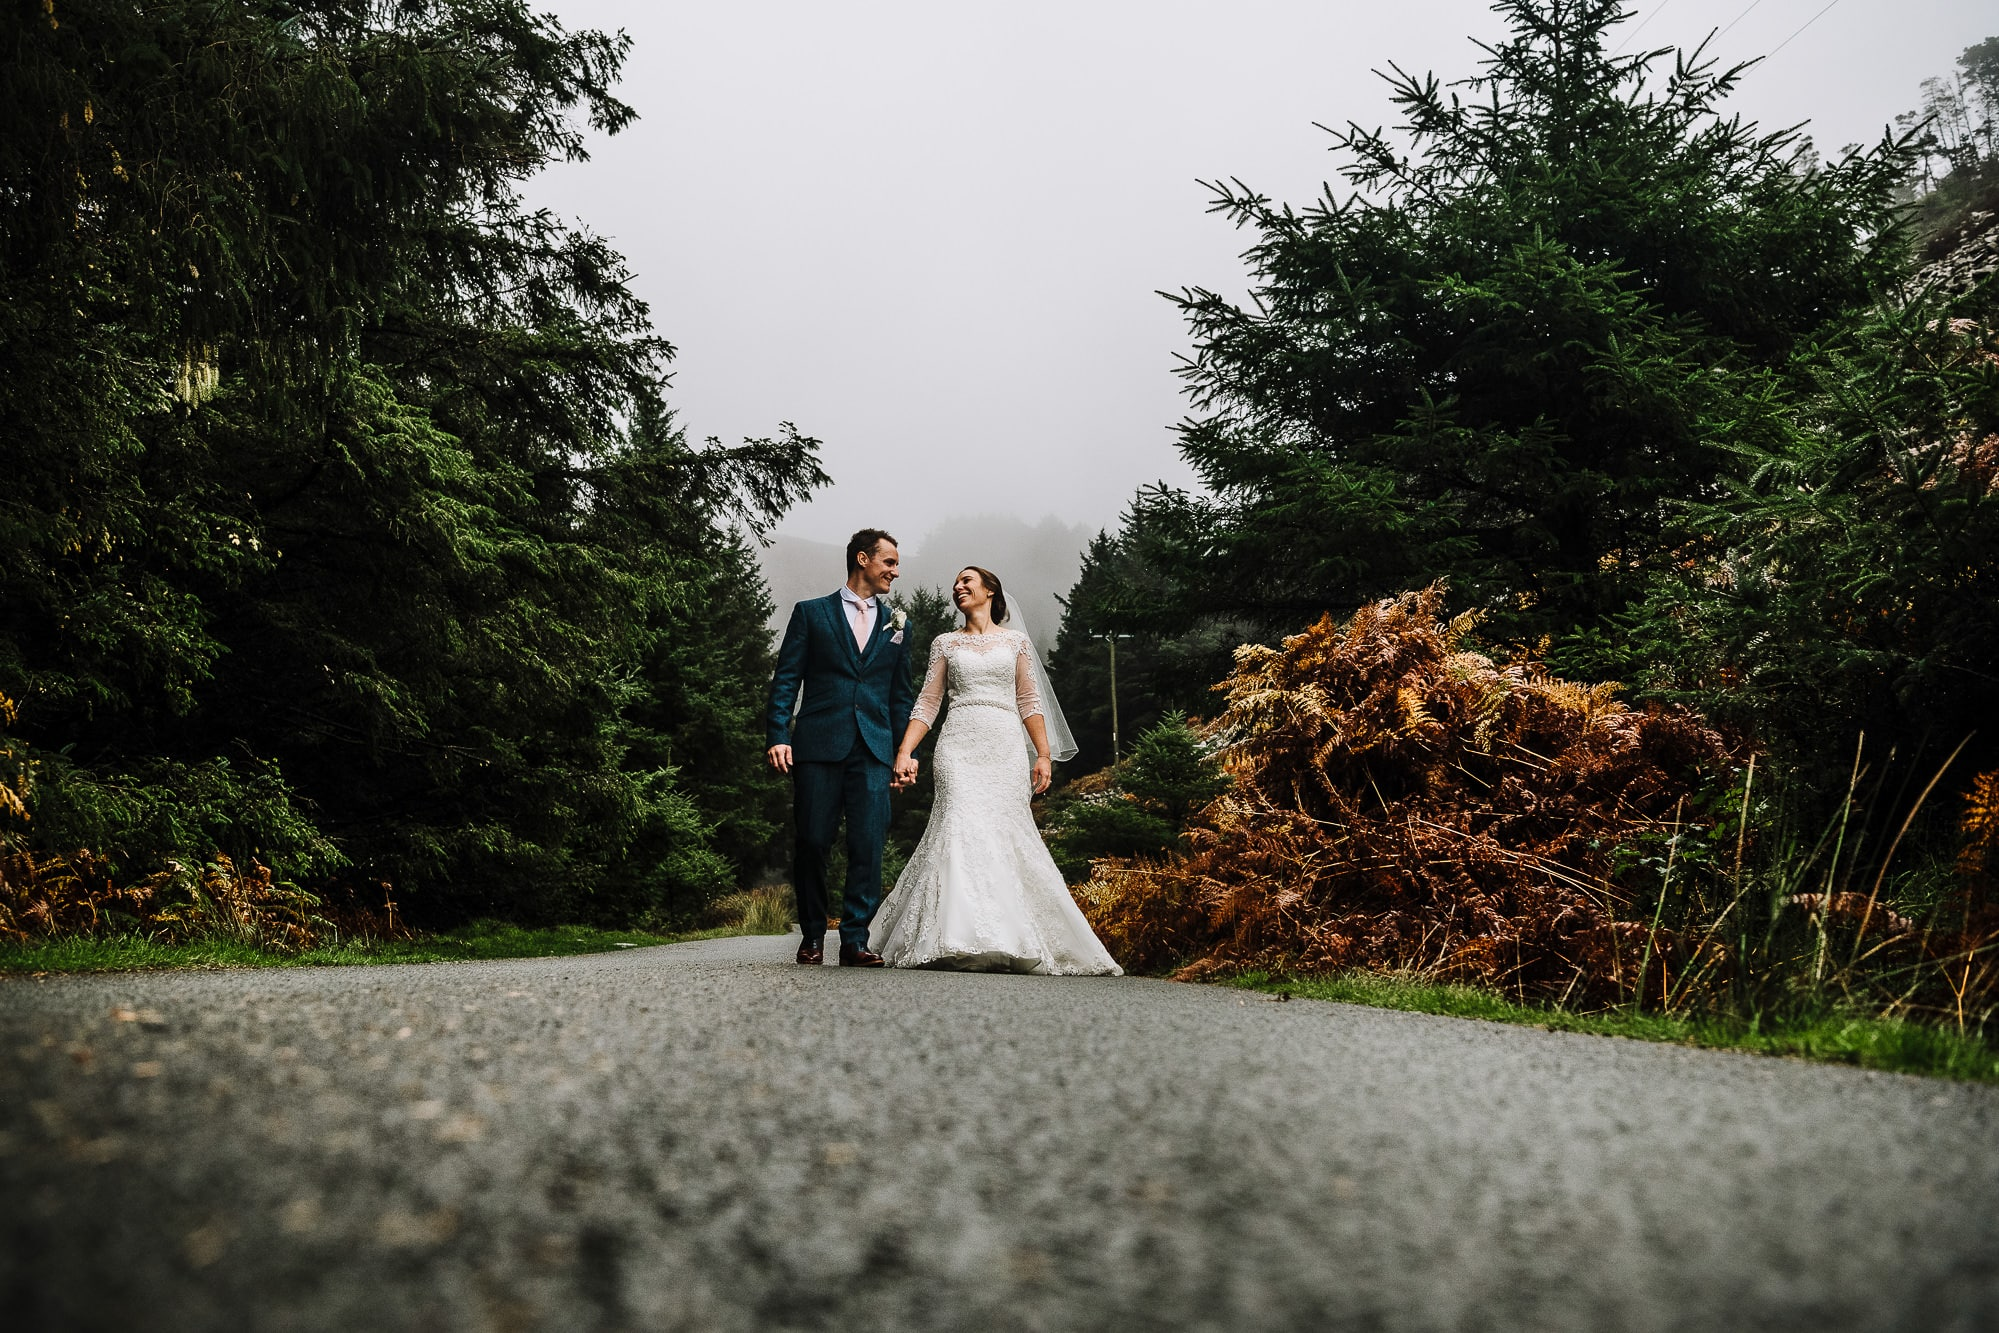 photo of the bride and groom on the road in Nant Gwrtheyrn